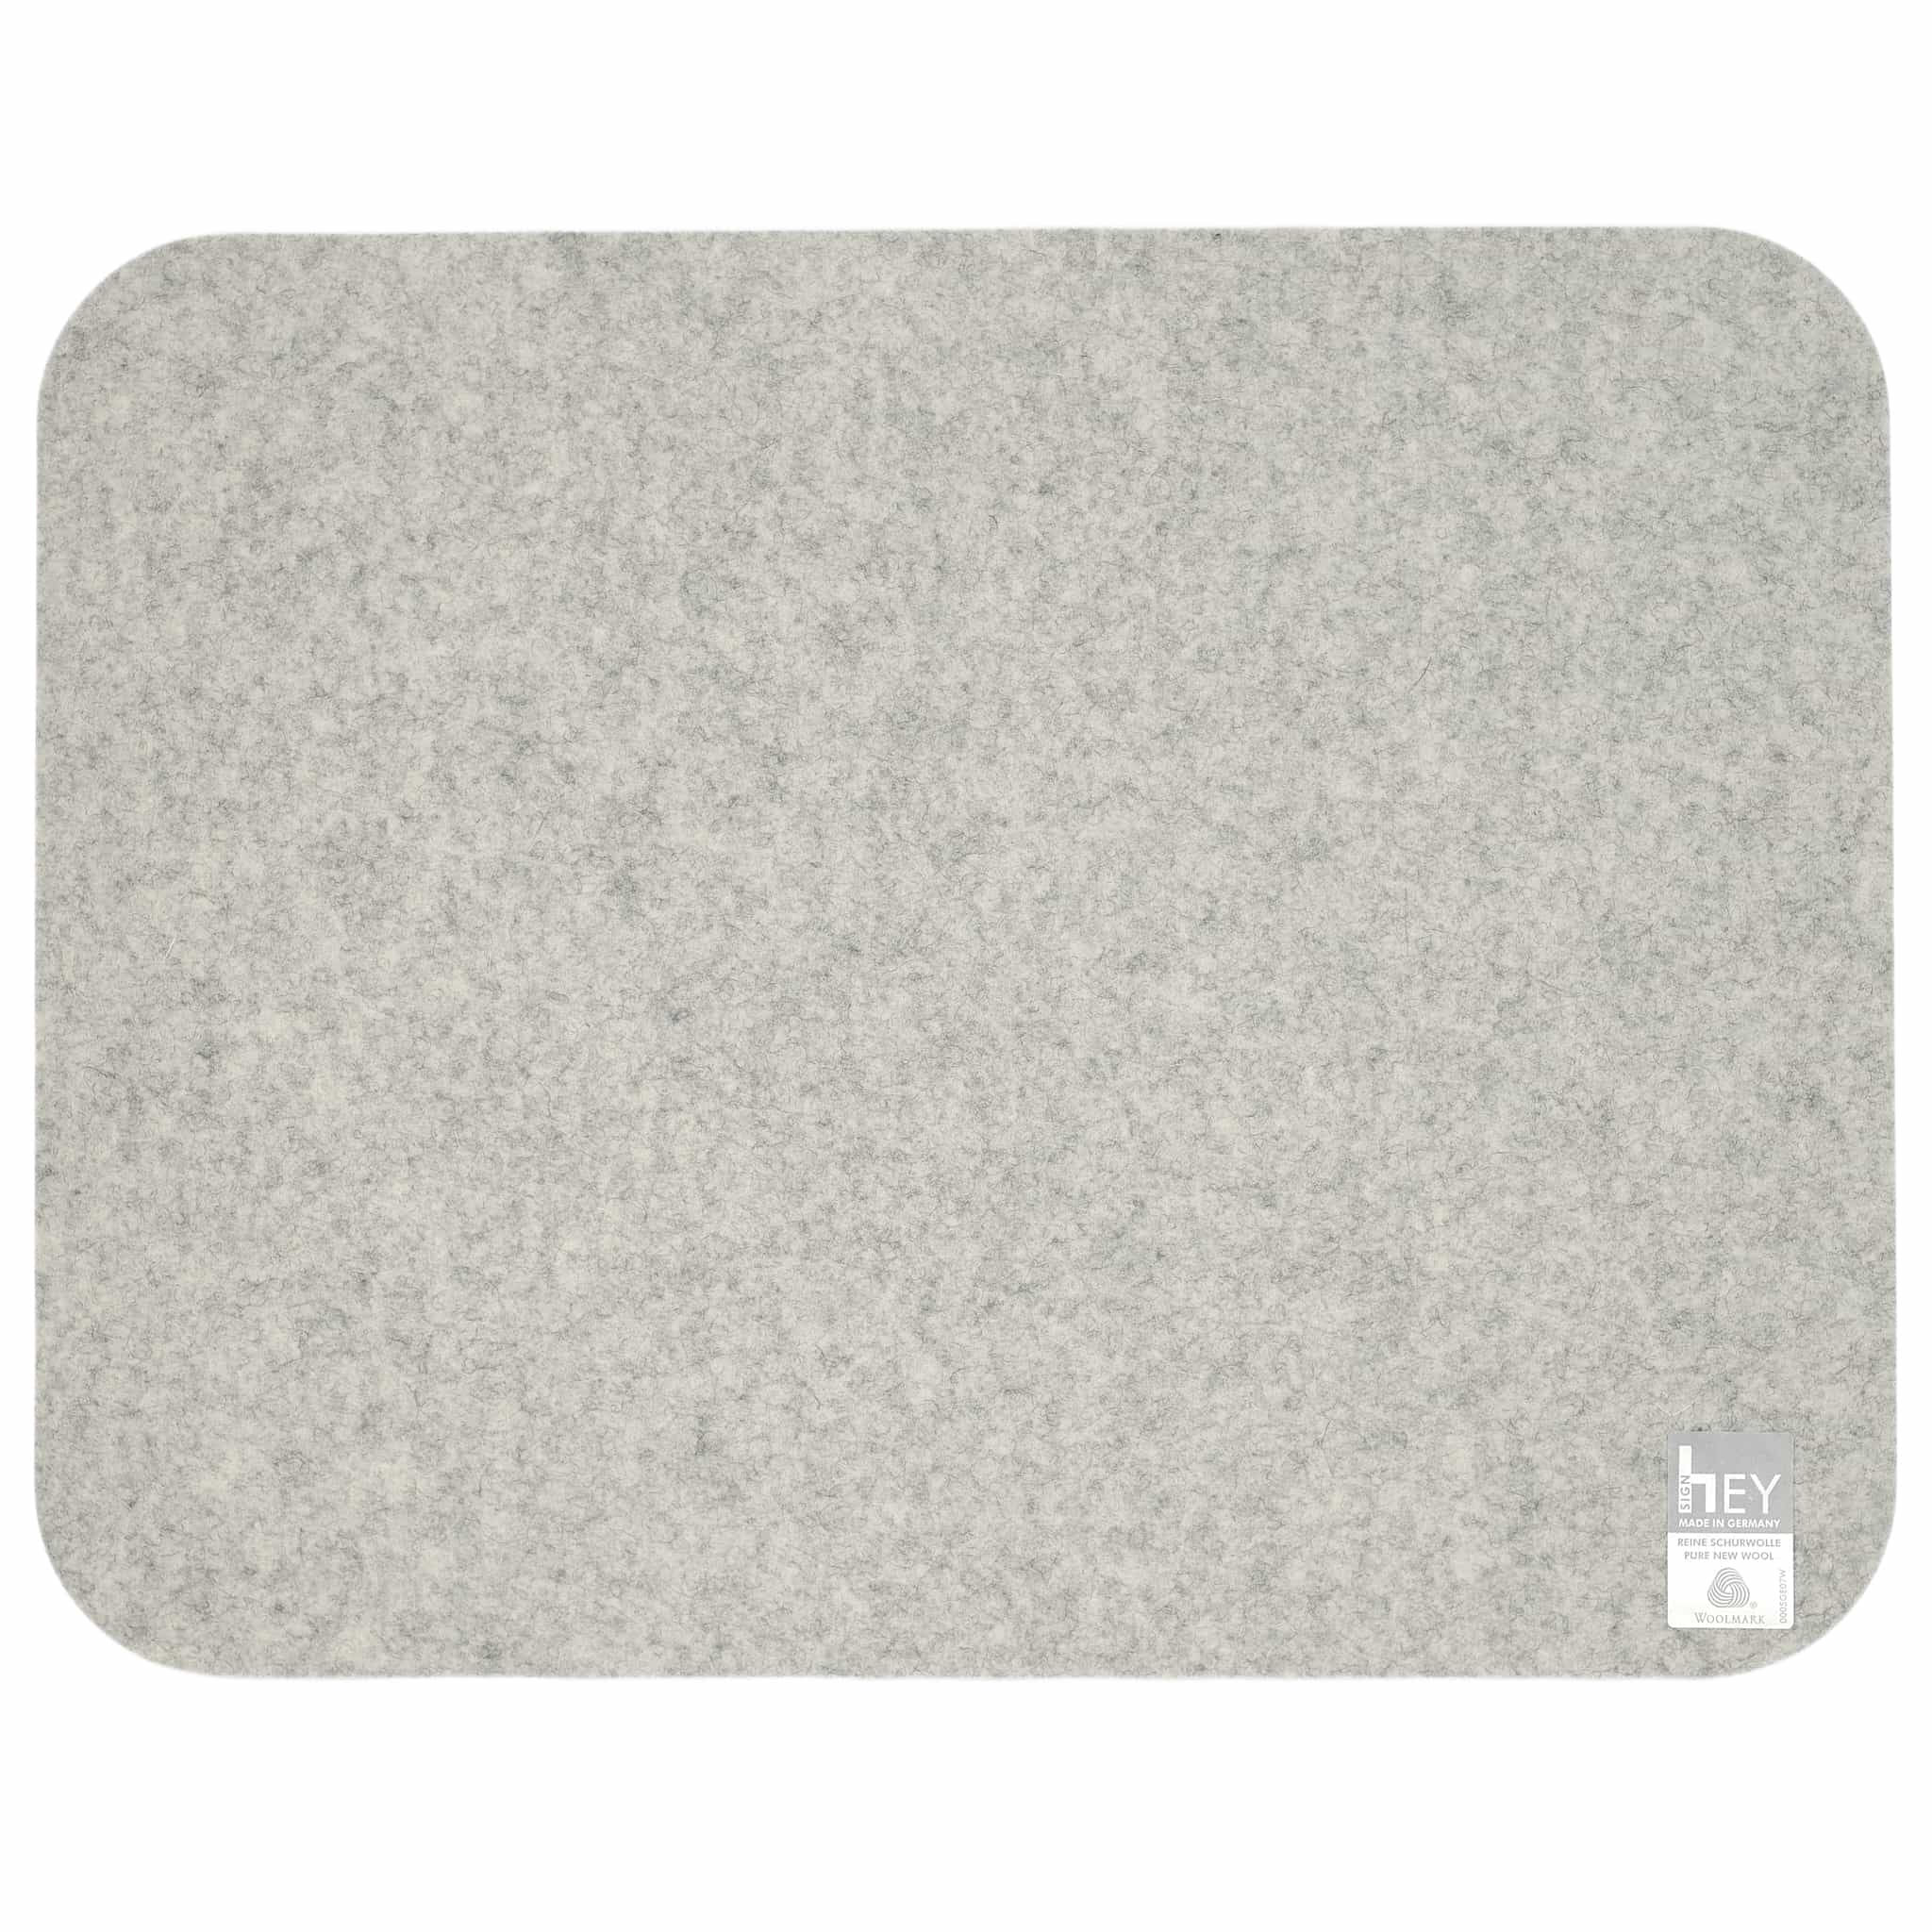 Rectangular Felt Placemat in Marble by Hey-Sign 300134506 looking at Back